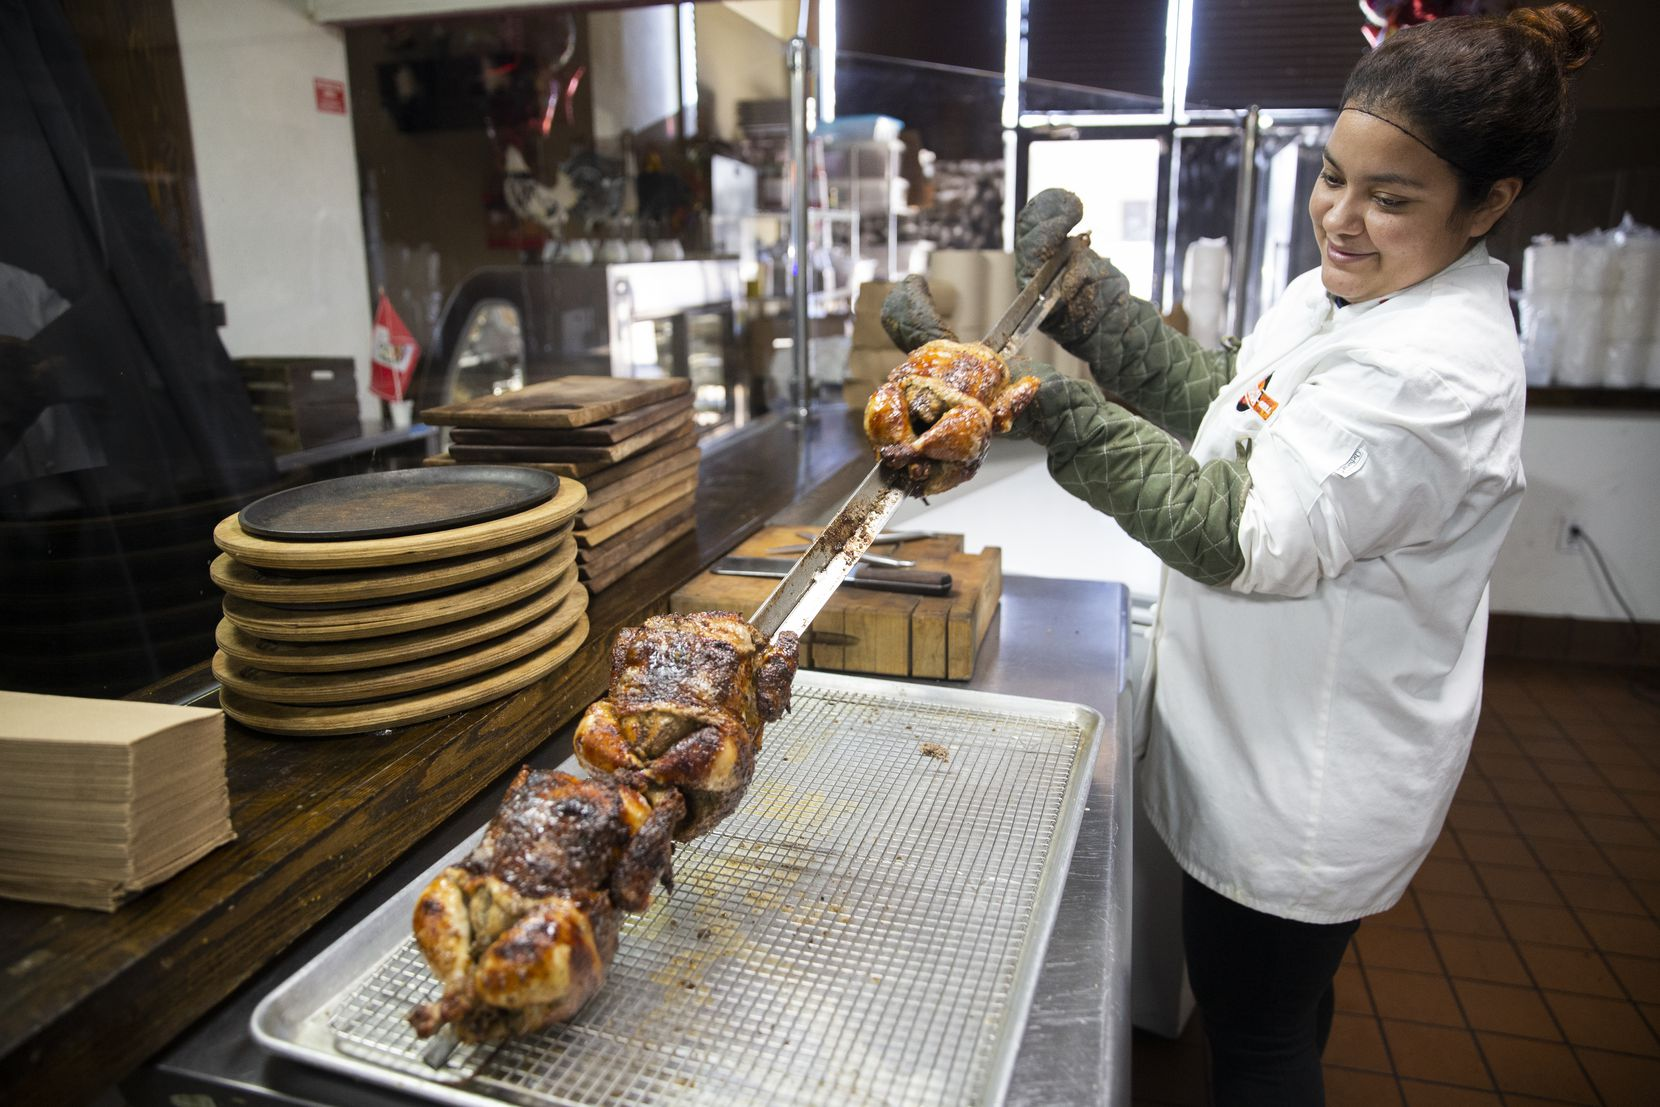 Jenny Lopez takes the pollo a la brasa (Peruvian roasted chicken) out of the oven at the Brasa Bar and Grill in Richardson.